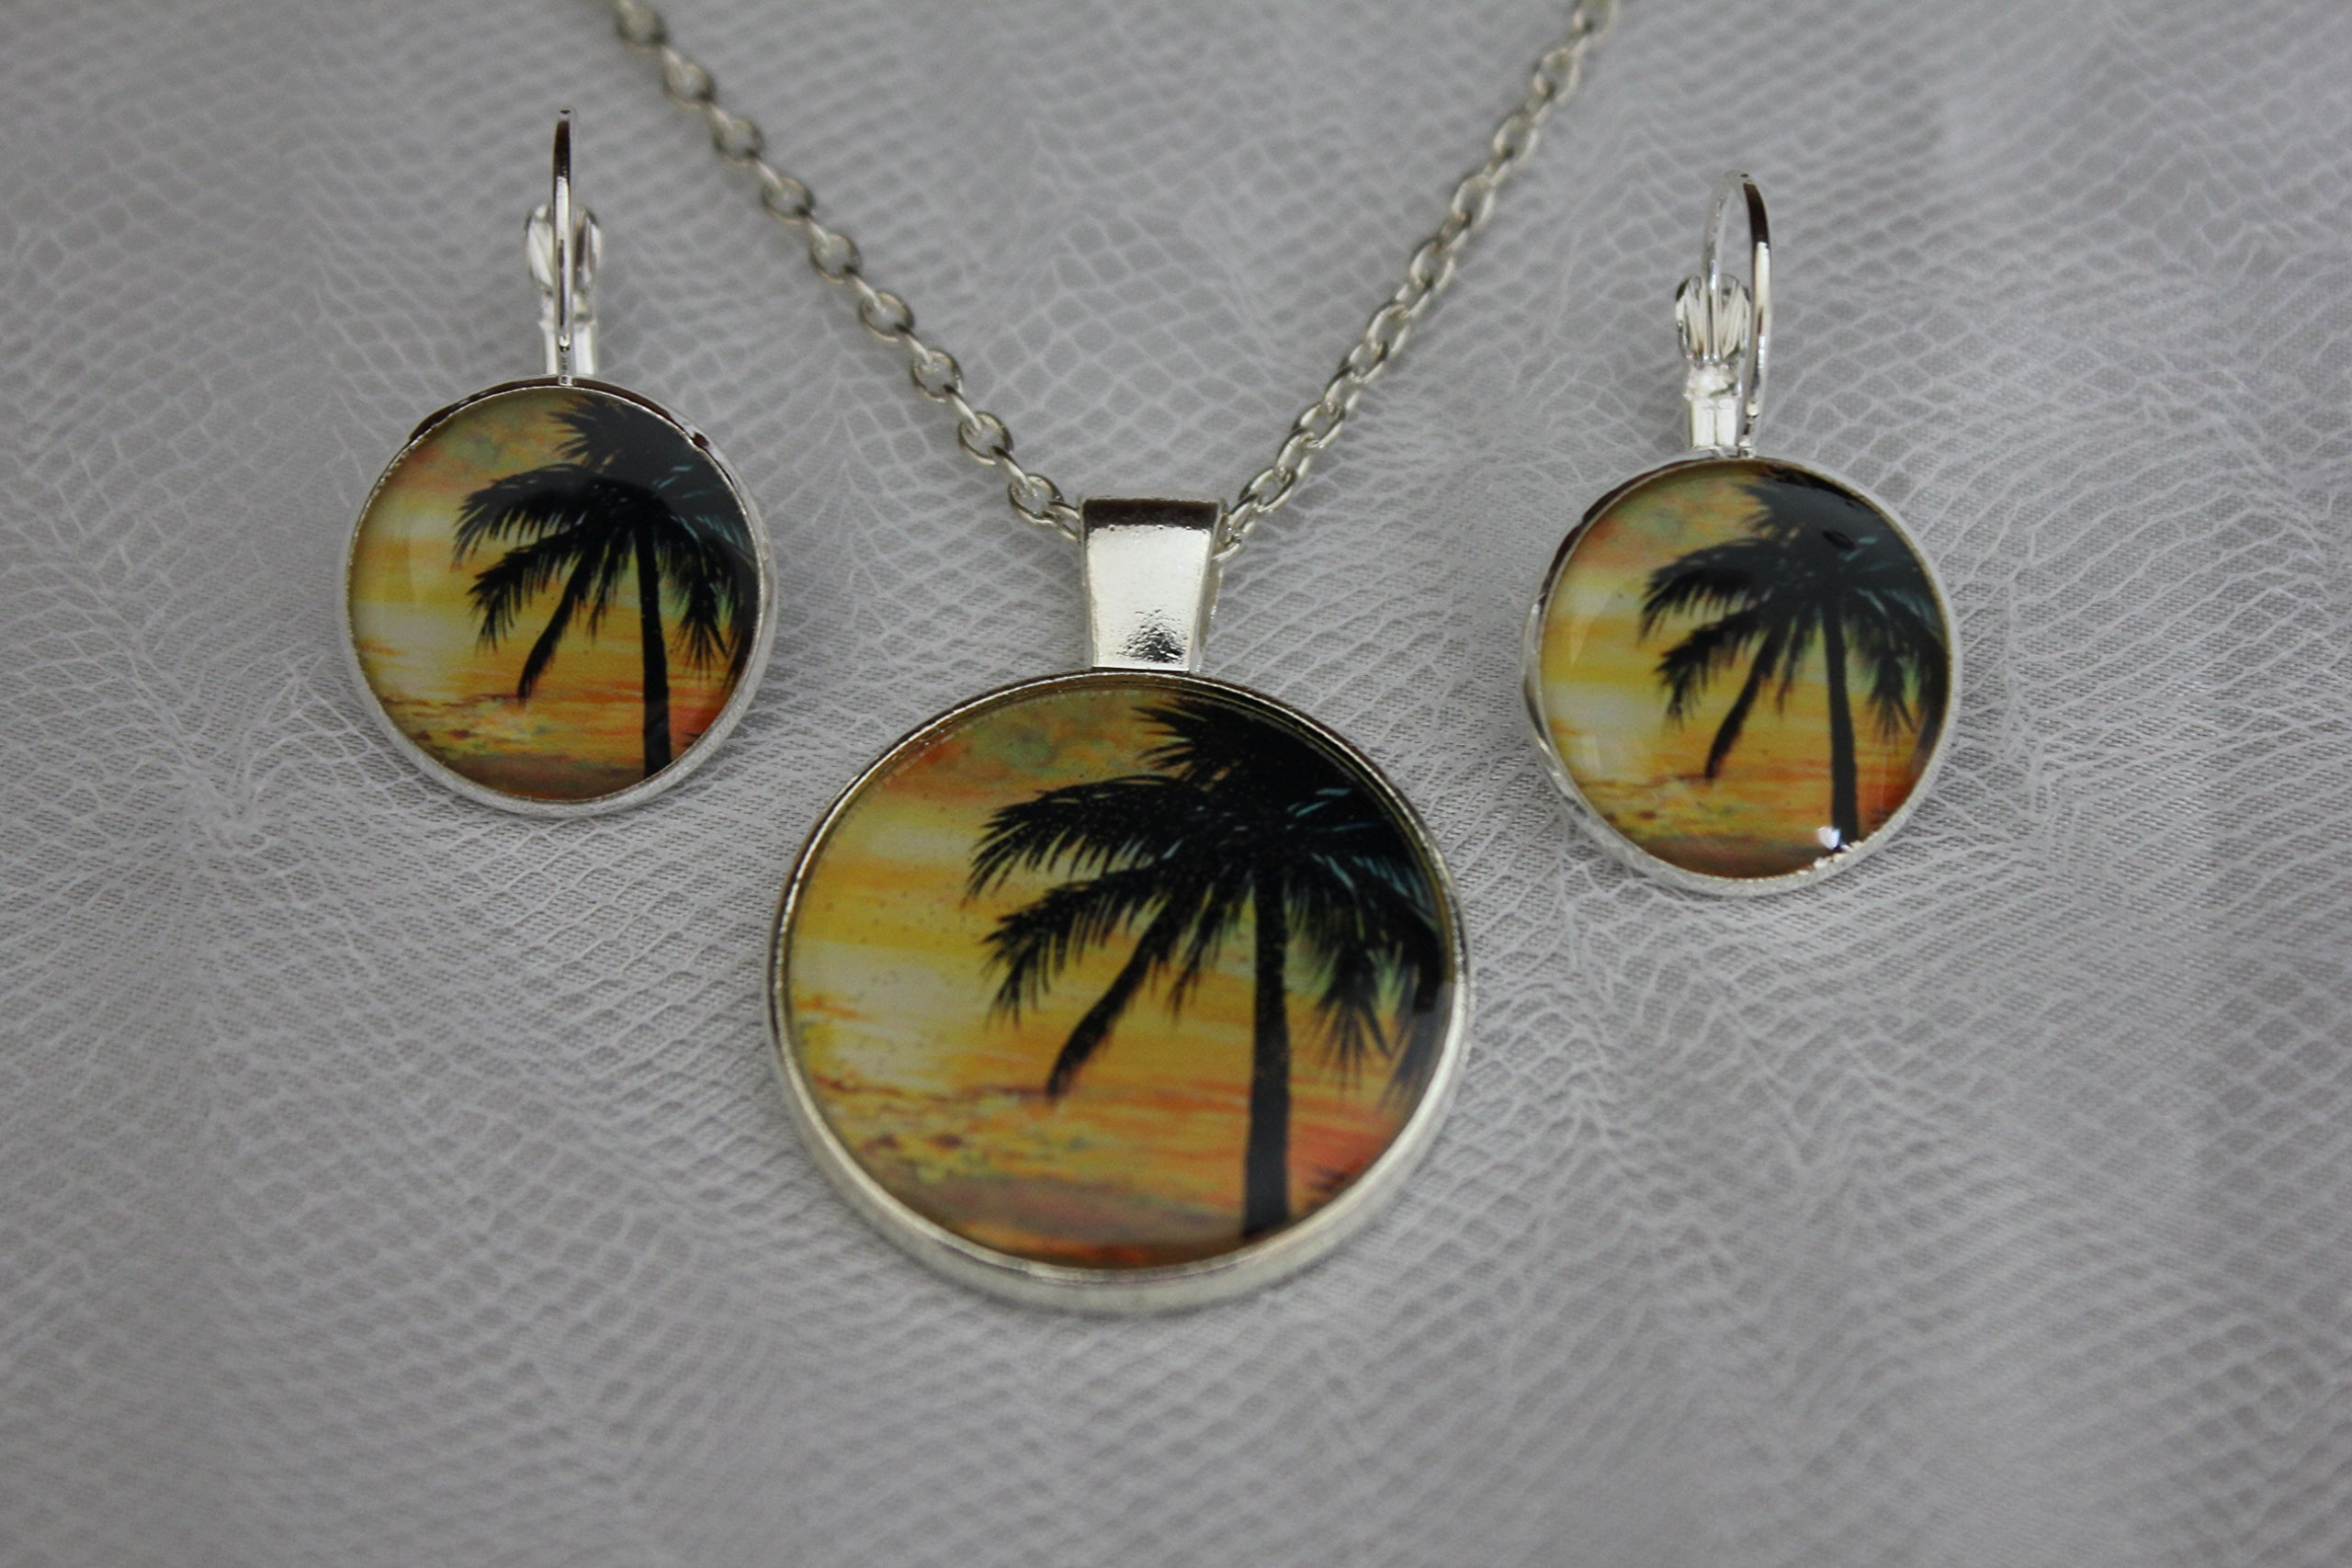 Palm Tree Pendant and Palm Tree Lever Back Earrings, Necklace and Earring Set